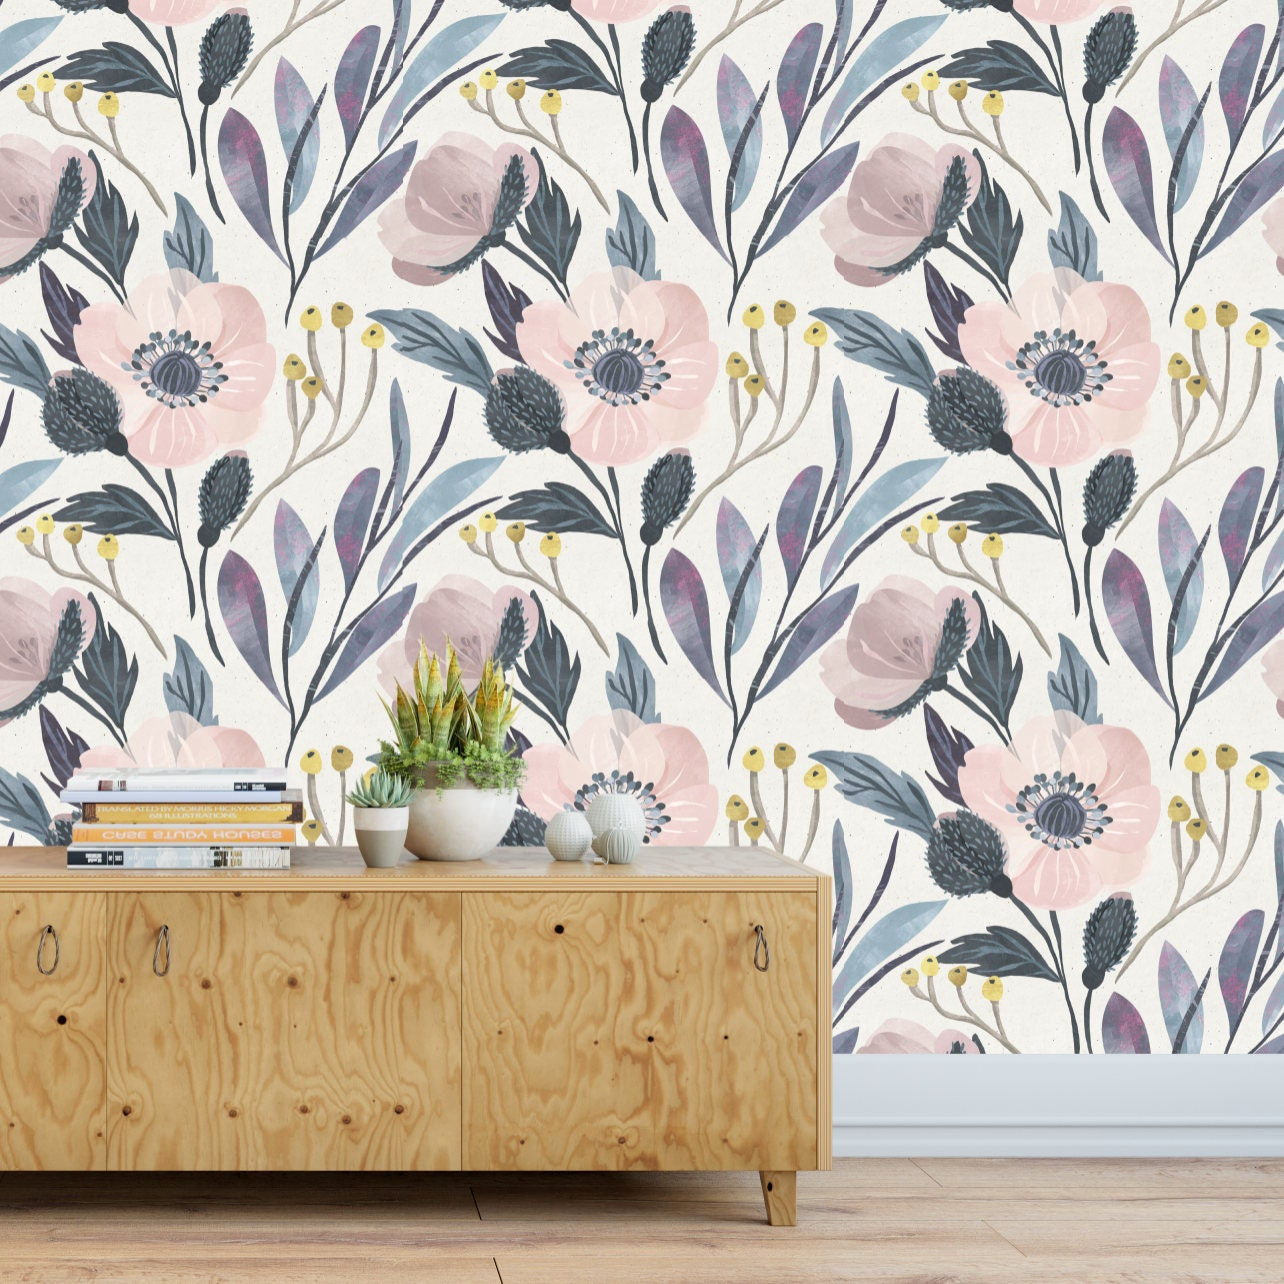 Moody Flower Wallpaper Temporary Wallpaper Removable